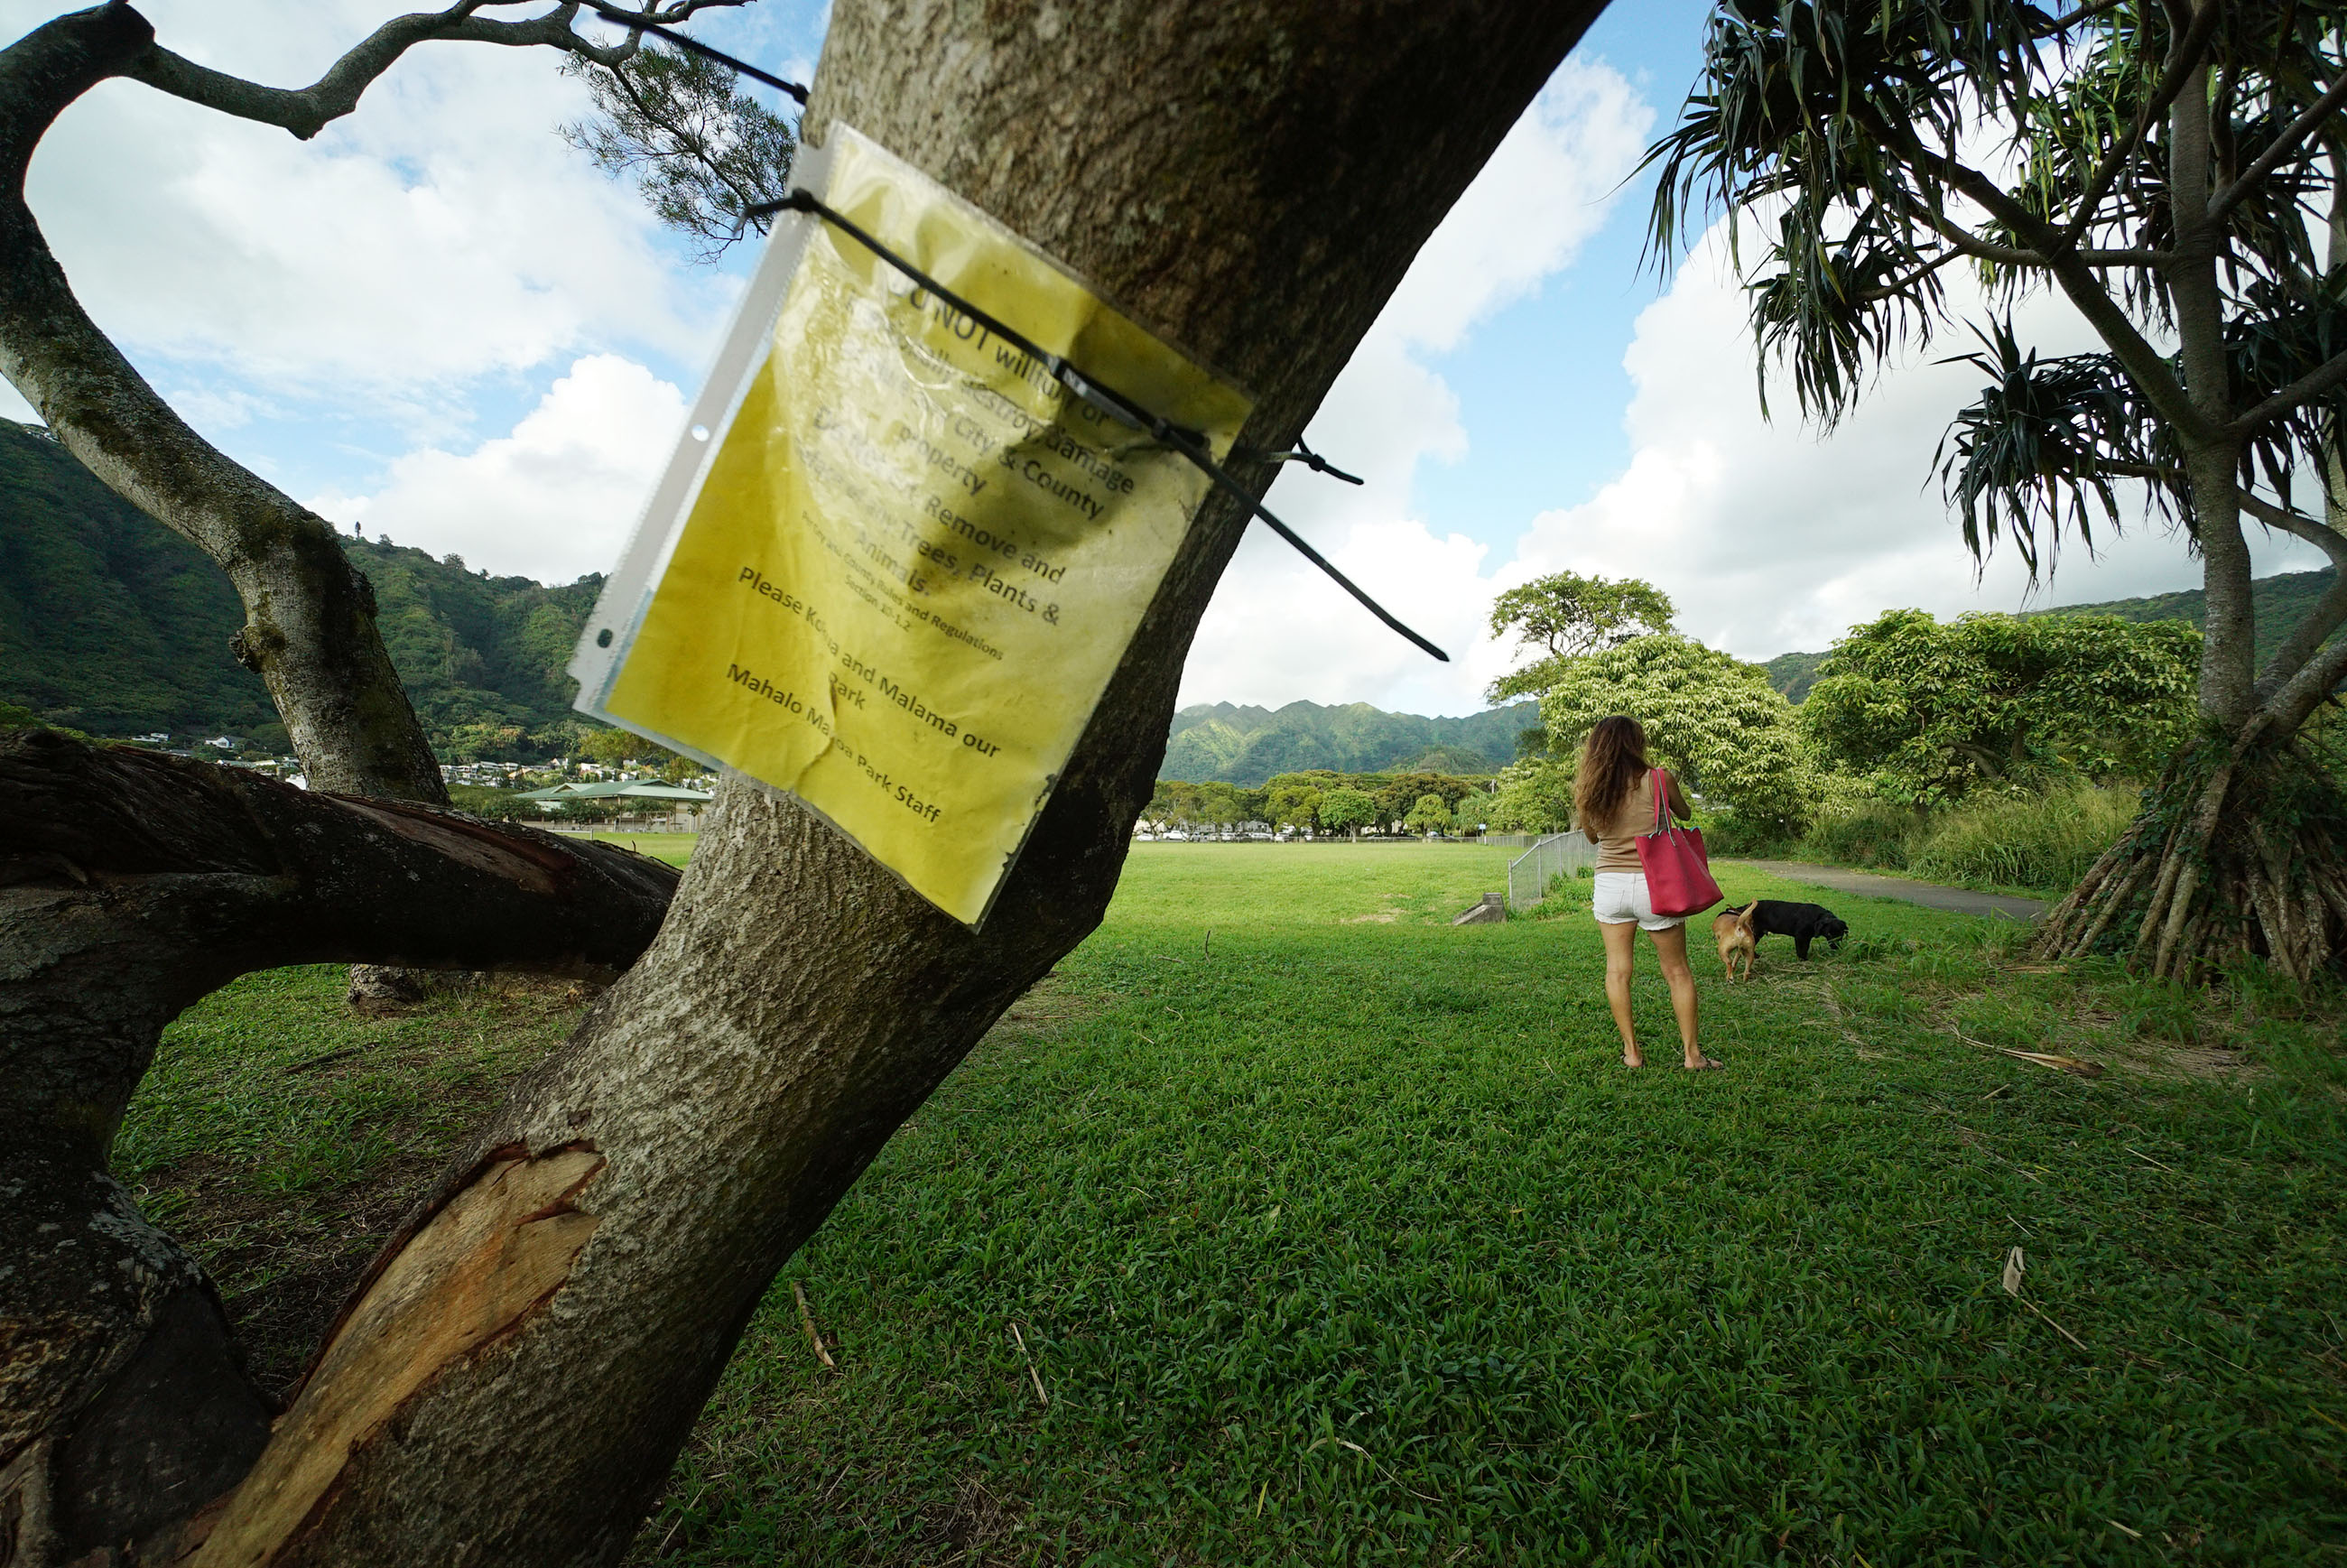 Damaged Acacia Trees at Manoa Park.